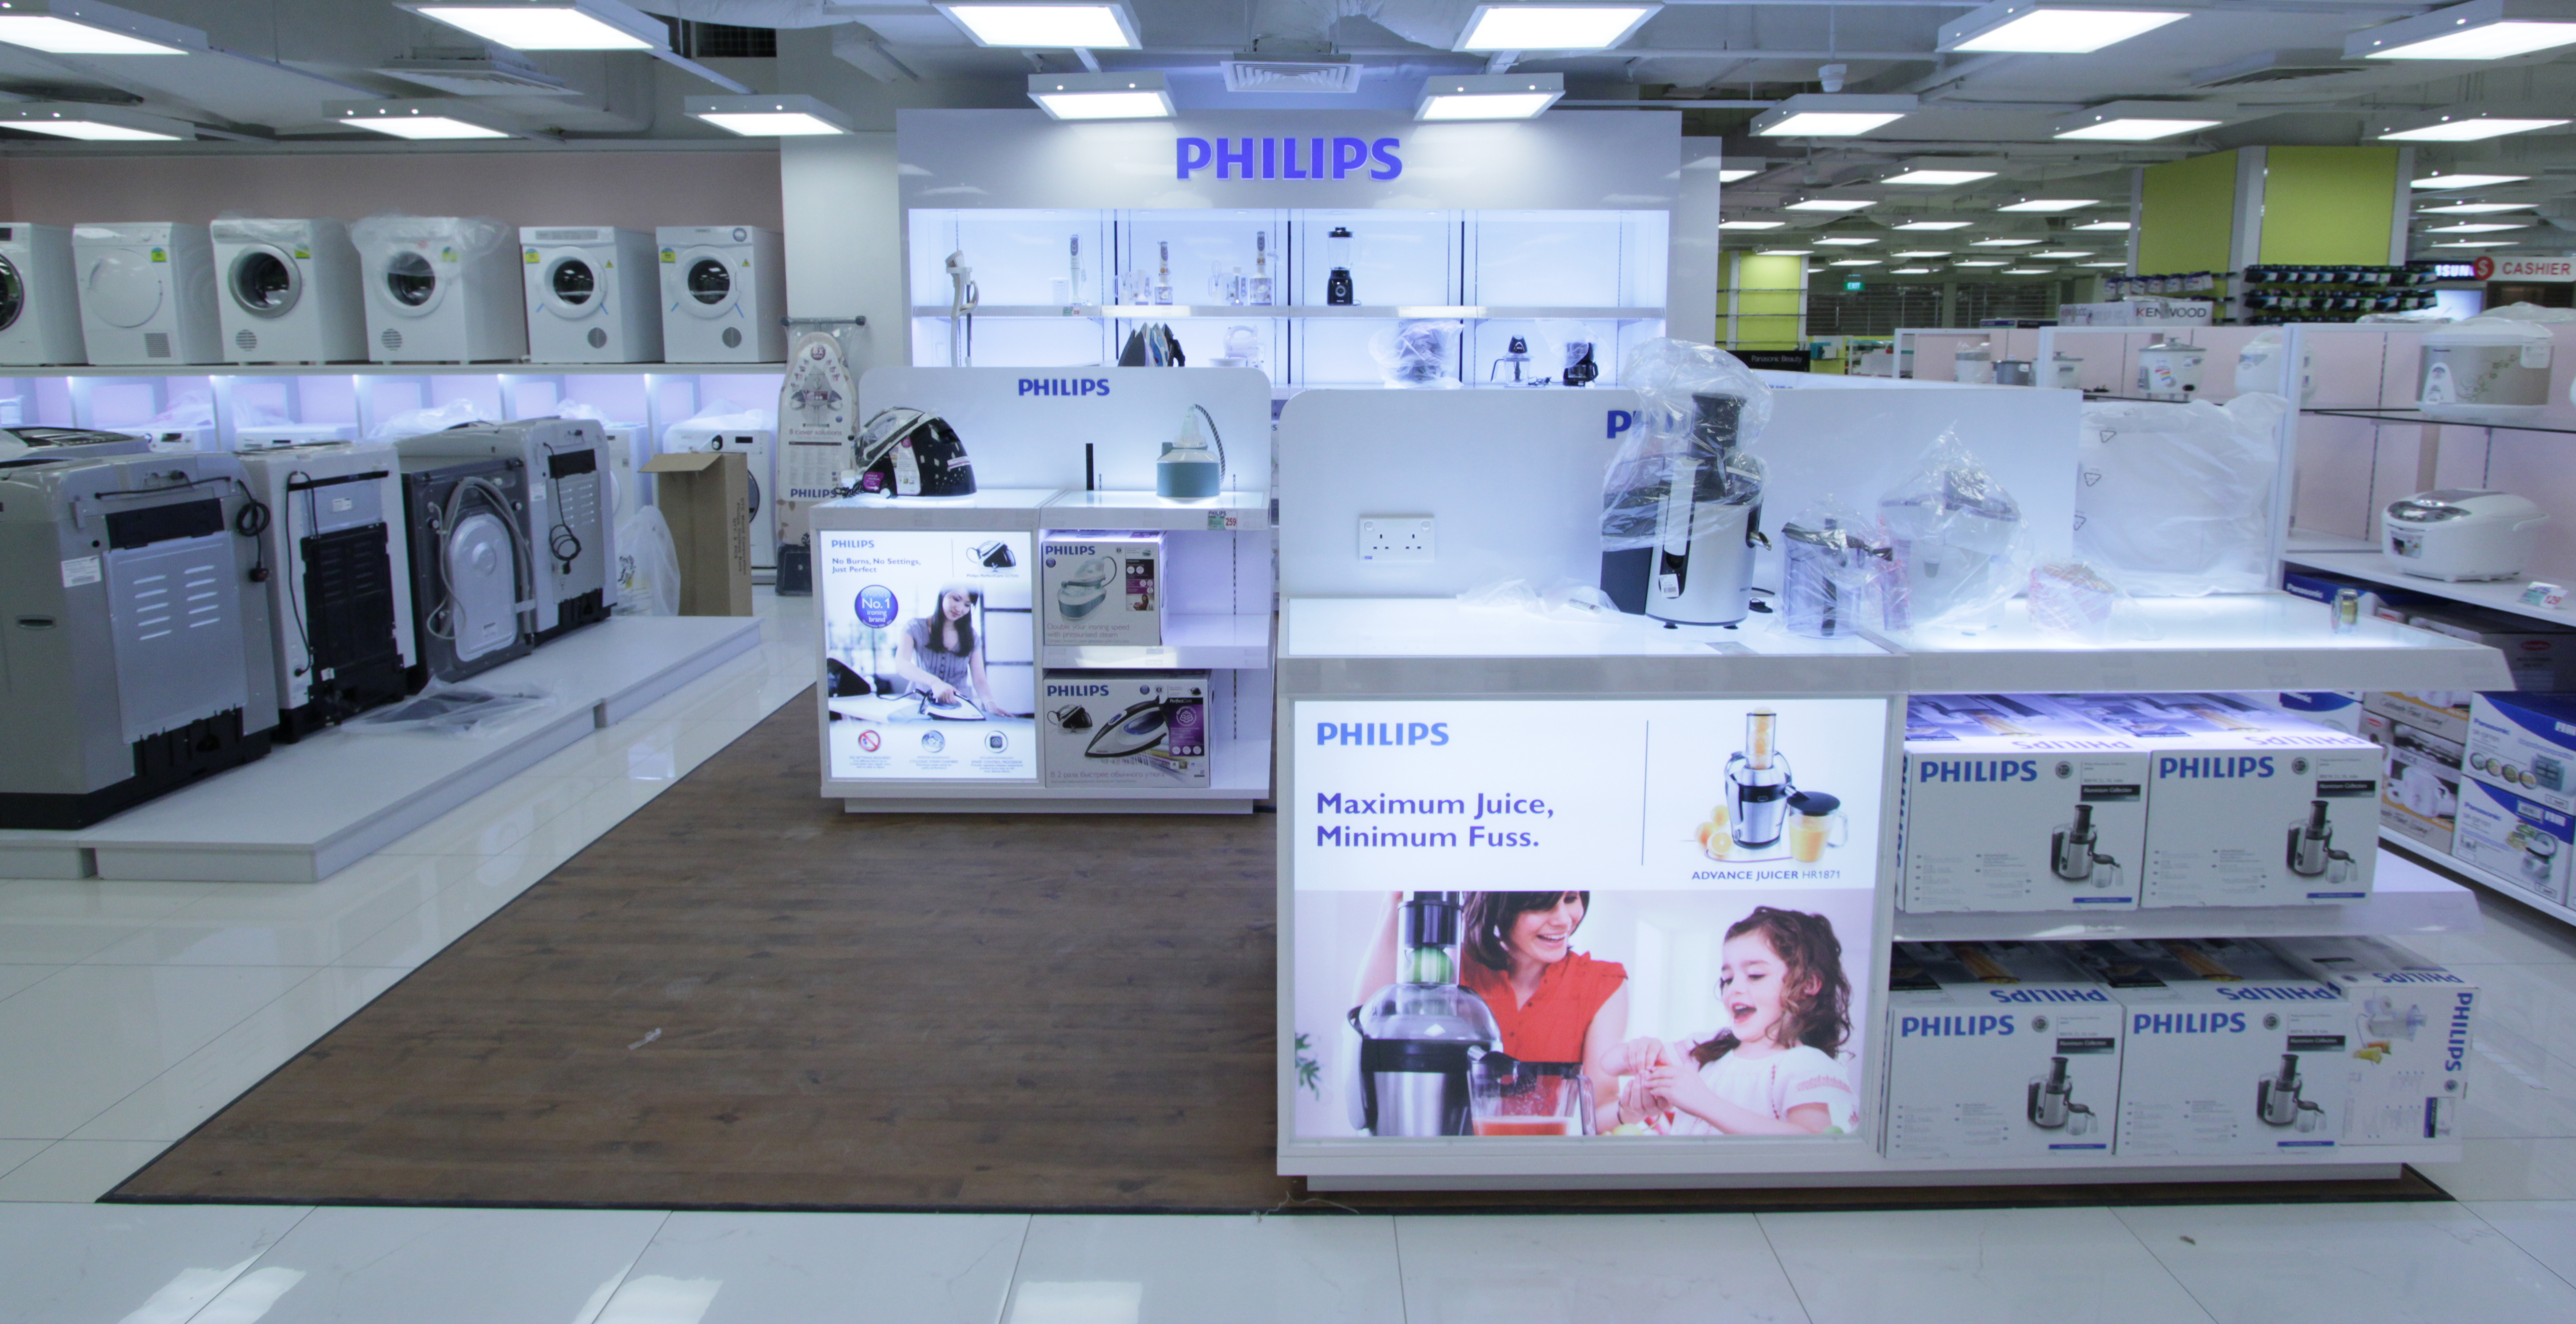 Phillips Kitchen Appliances Project Management By Fero Ong At Coroflotcom